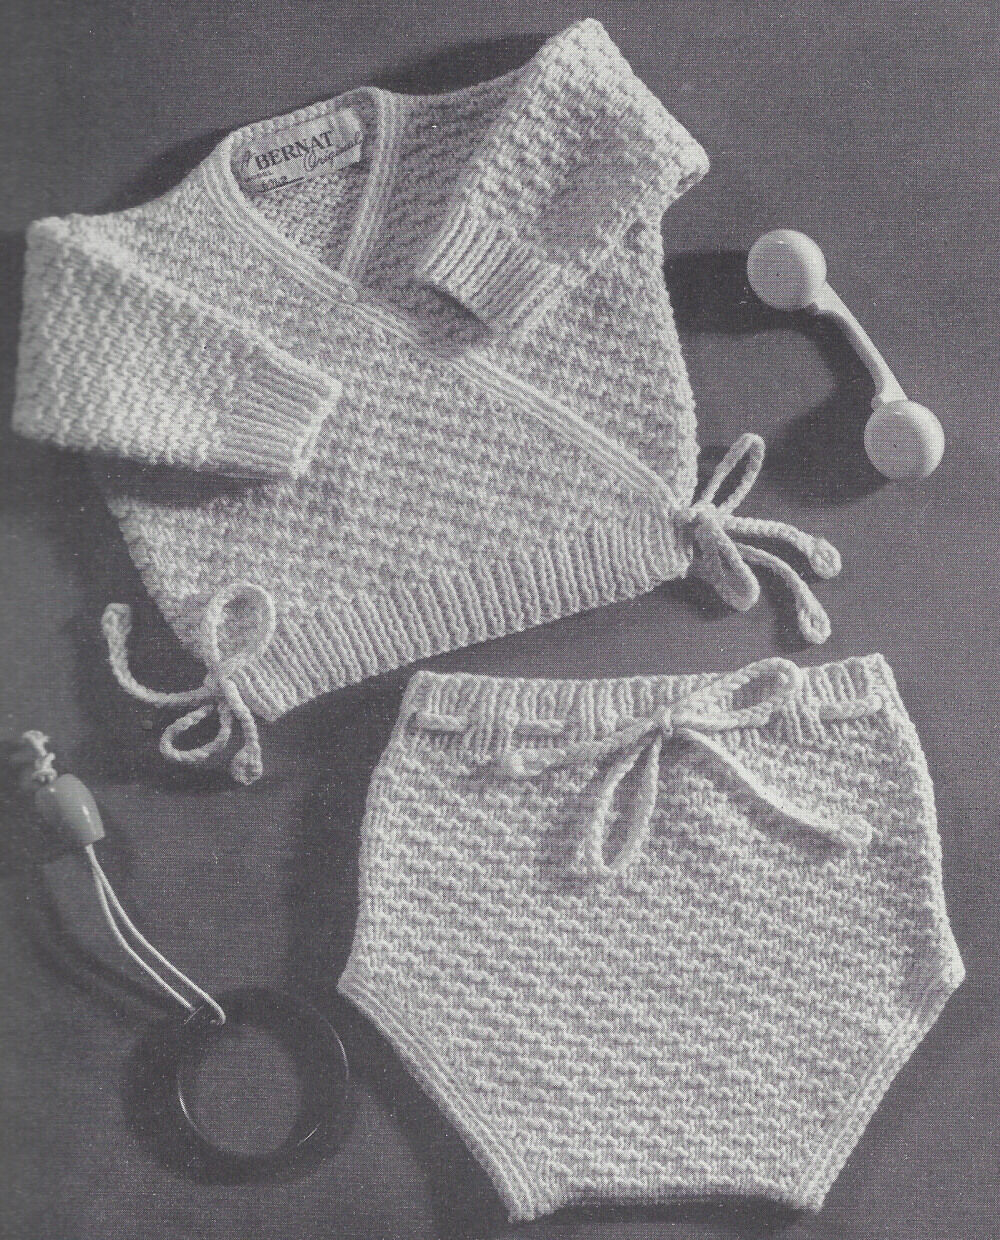 Vintage knitting pattern to make baby sursplice shirtsweater picture 1 of 1 bankloansurffo Gallery